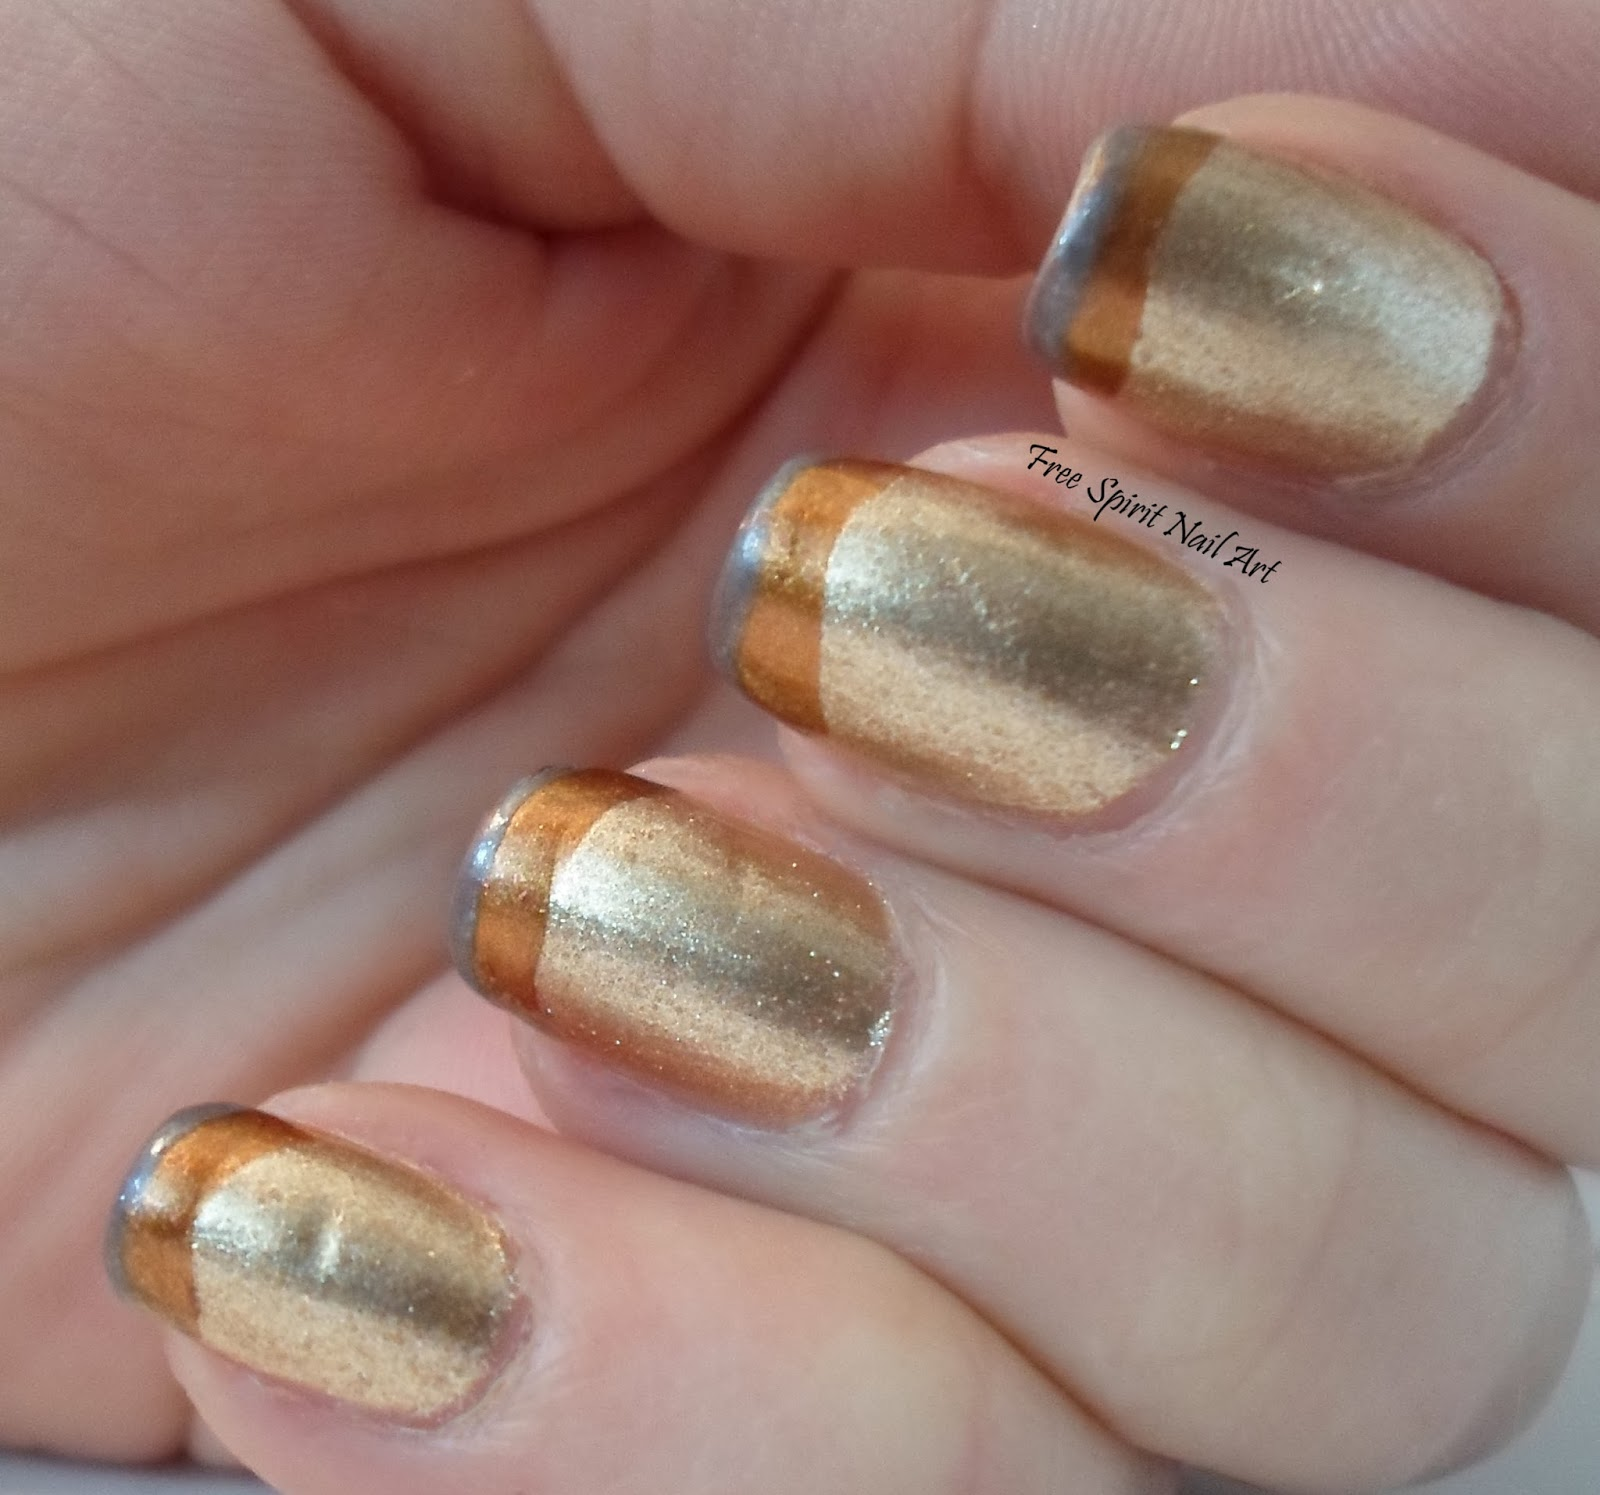 Free spirit nail art gun show nail art i did two coats of sally hansen golden i and let it dry i then painted a wide tip with essie leggy legend which is the copper color then a final thin tip prinsesfo Image collections